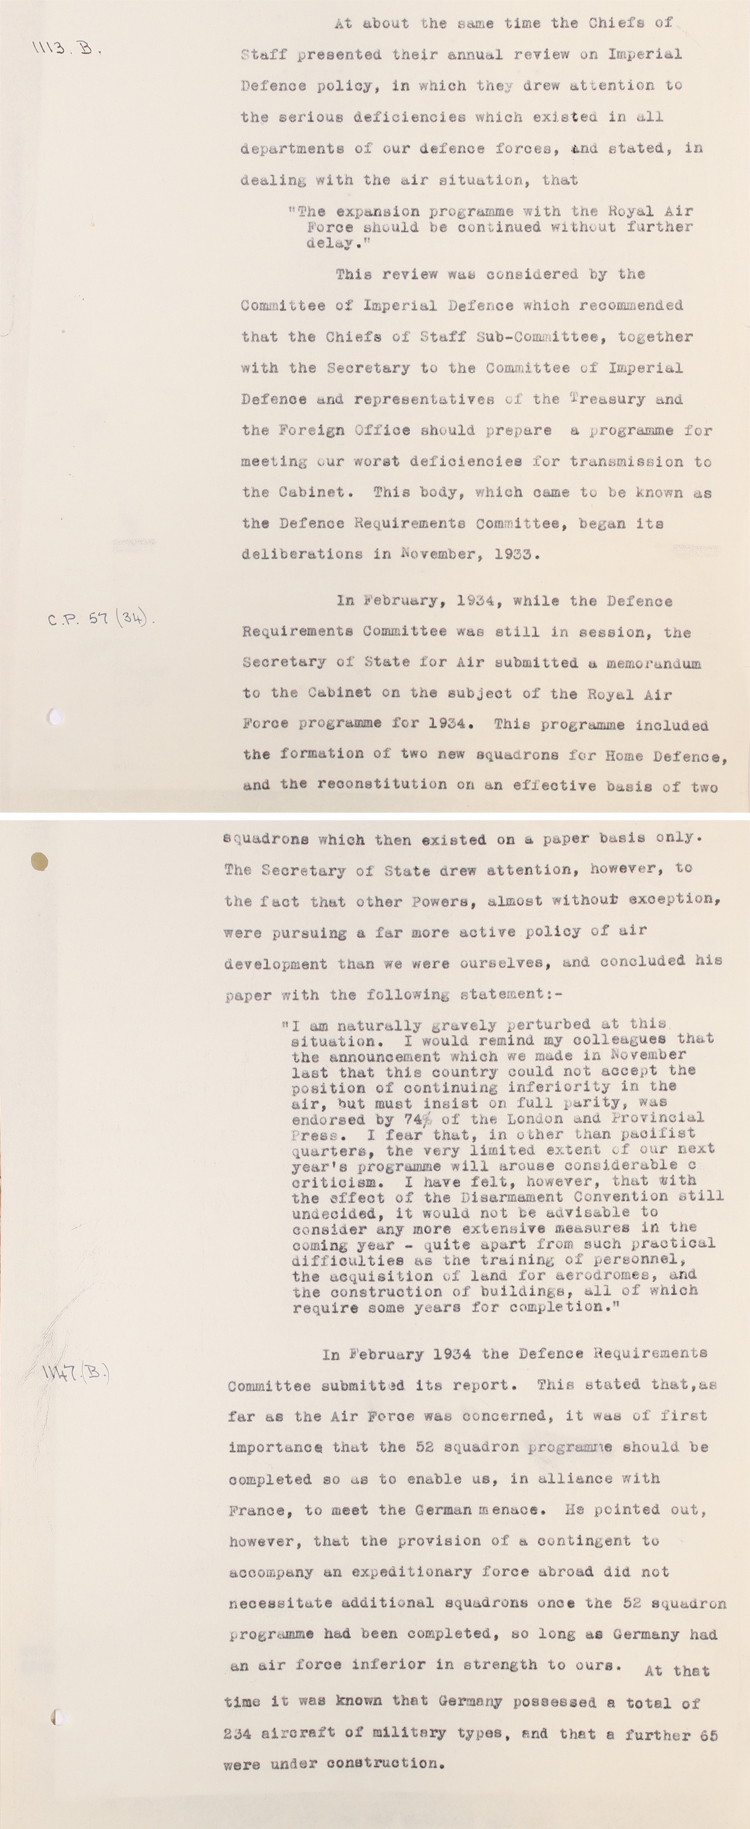 Extract from a review dated 1935 covering defence policy, 1923-1935 (AIR 20/32)